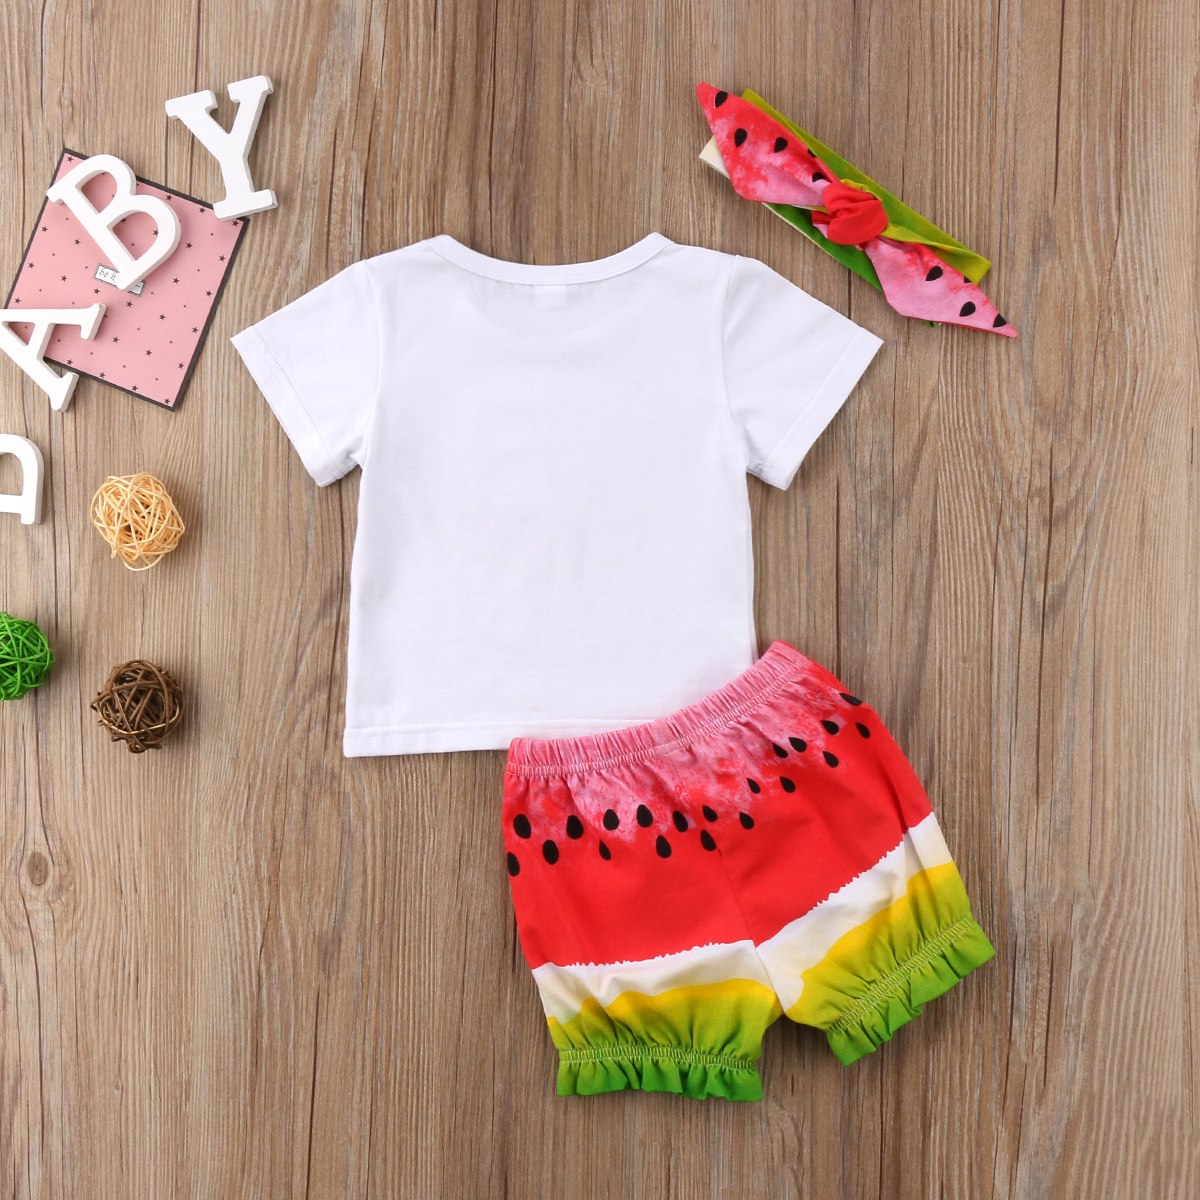 7c152a9a8556 3pcs Kids Baby Girl Watermelon Fruits Outfit Headband T shirts Shorts Pants  Clothes Set 2018 Summer Short Sleeve Cotton Clothing-in Clothing Sets from  ...